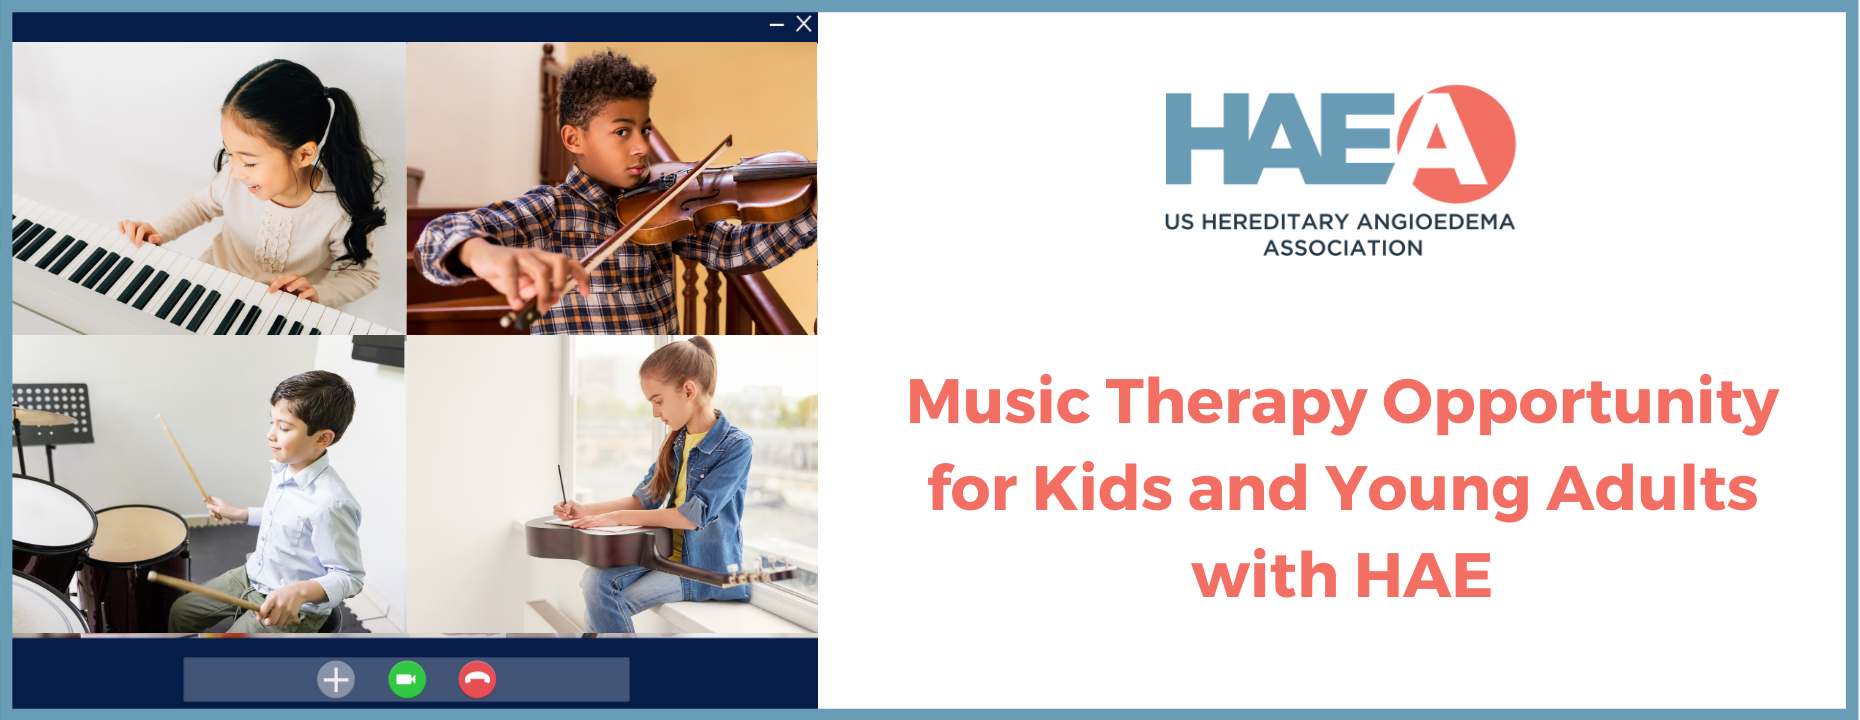 Music Therapy Opportunity for Kids and Young Adults with HAE